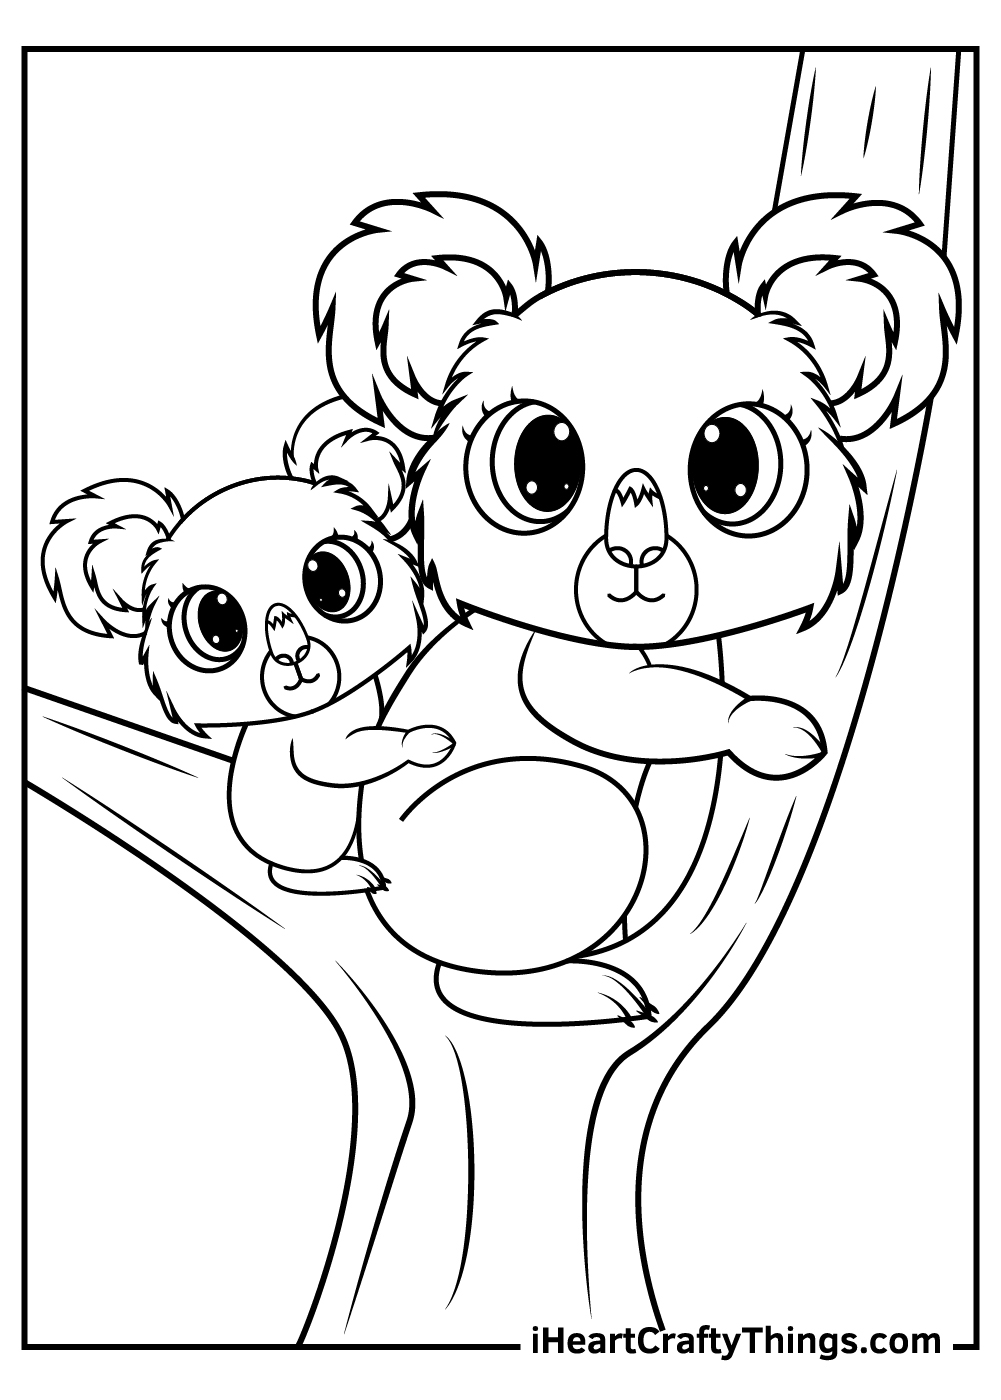 mother and baby koalas coloring pages